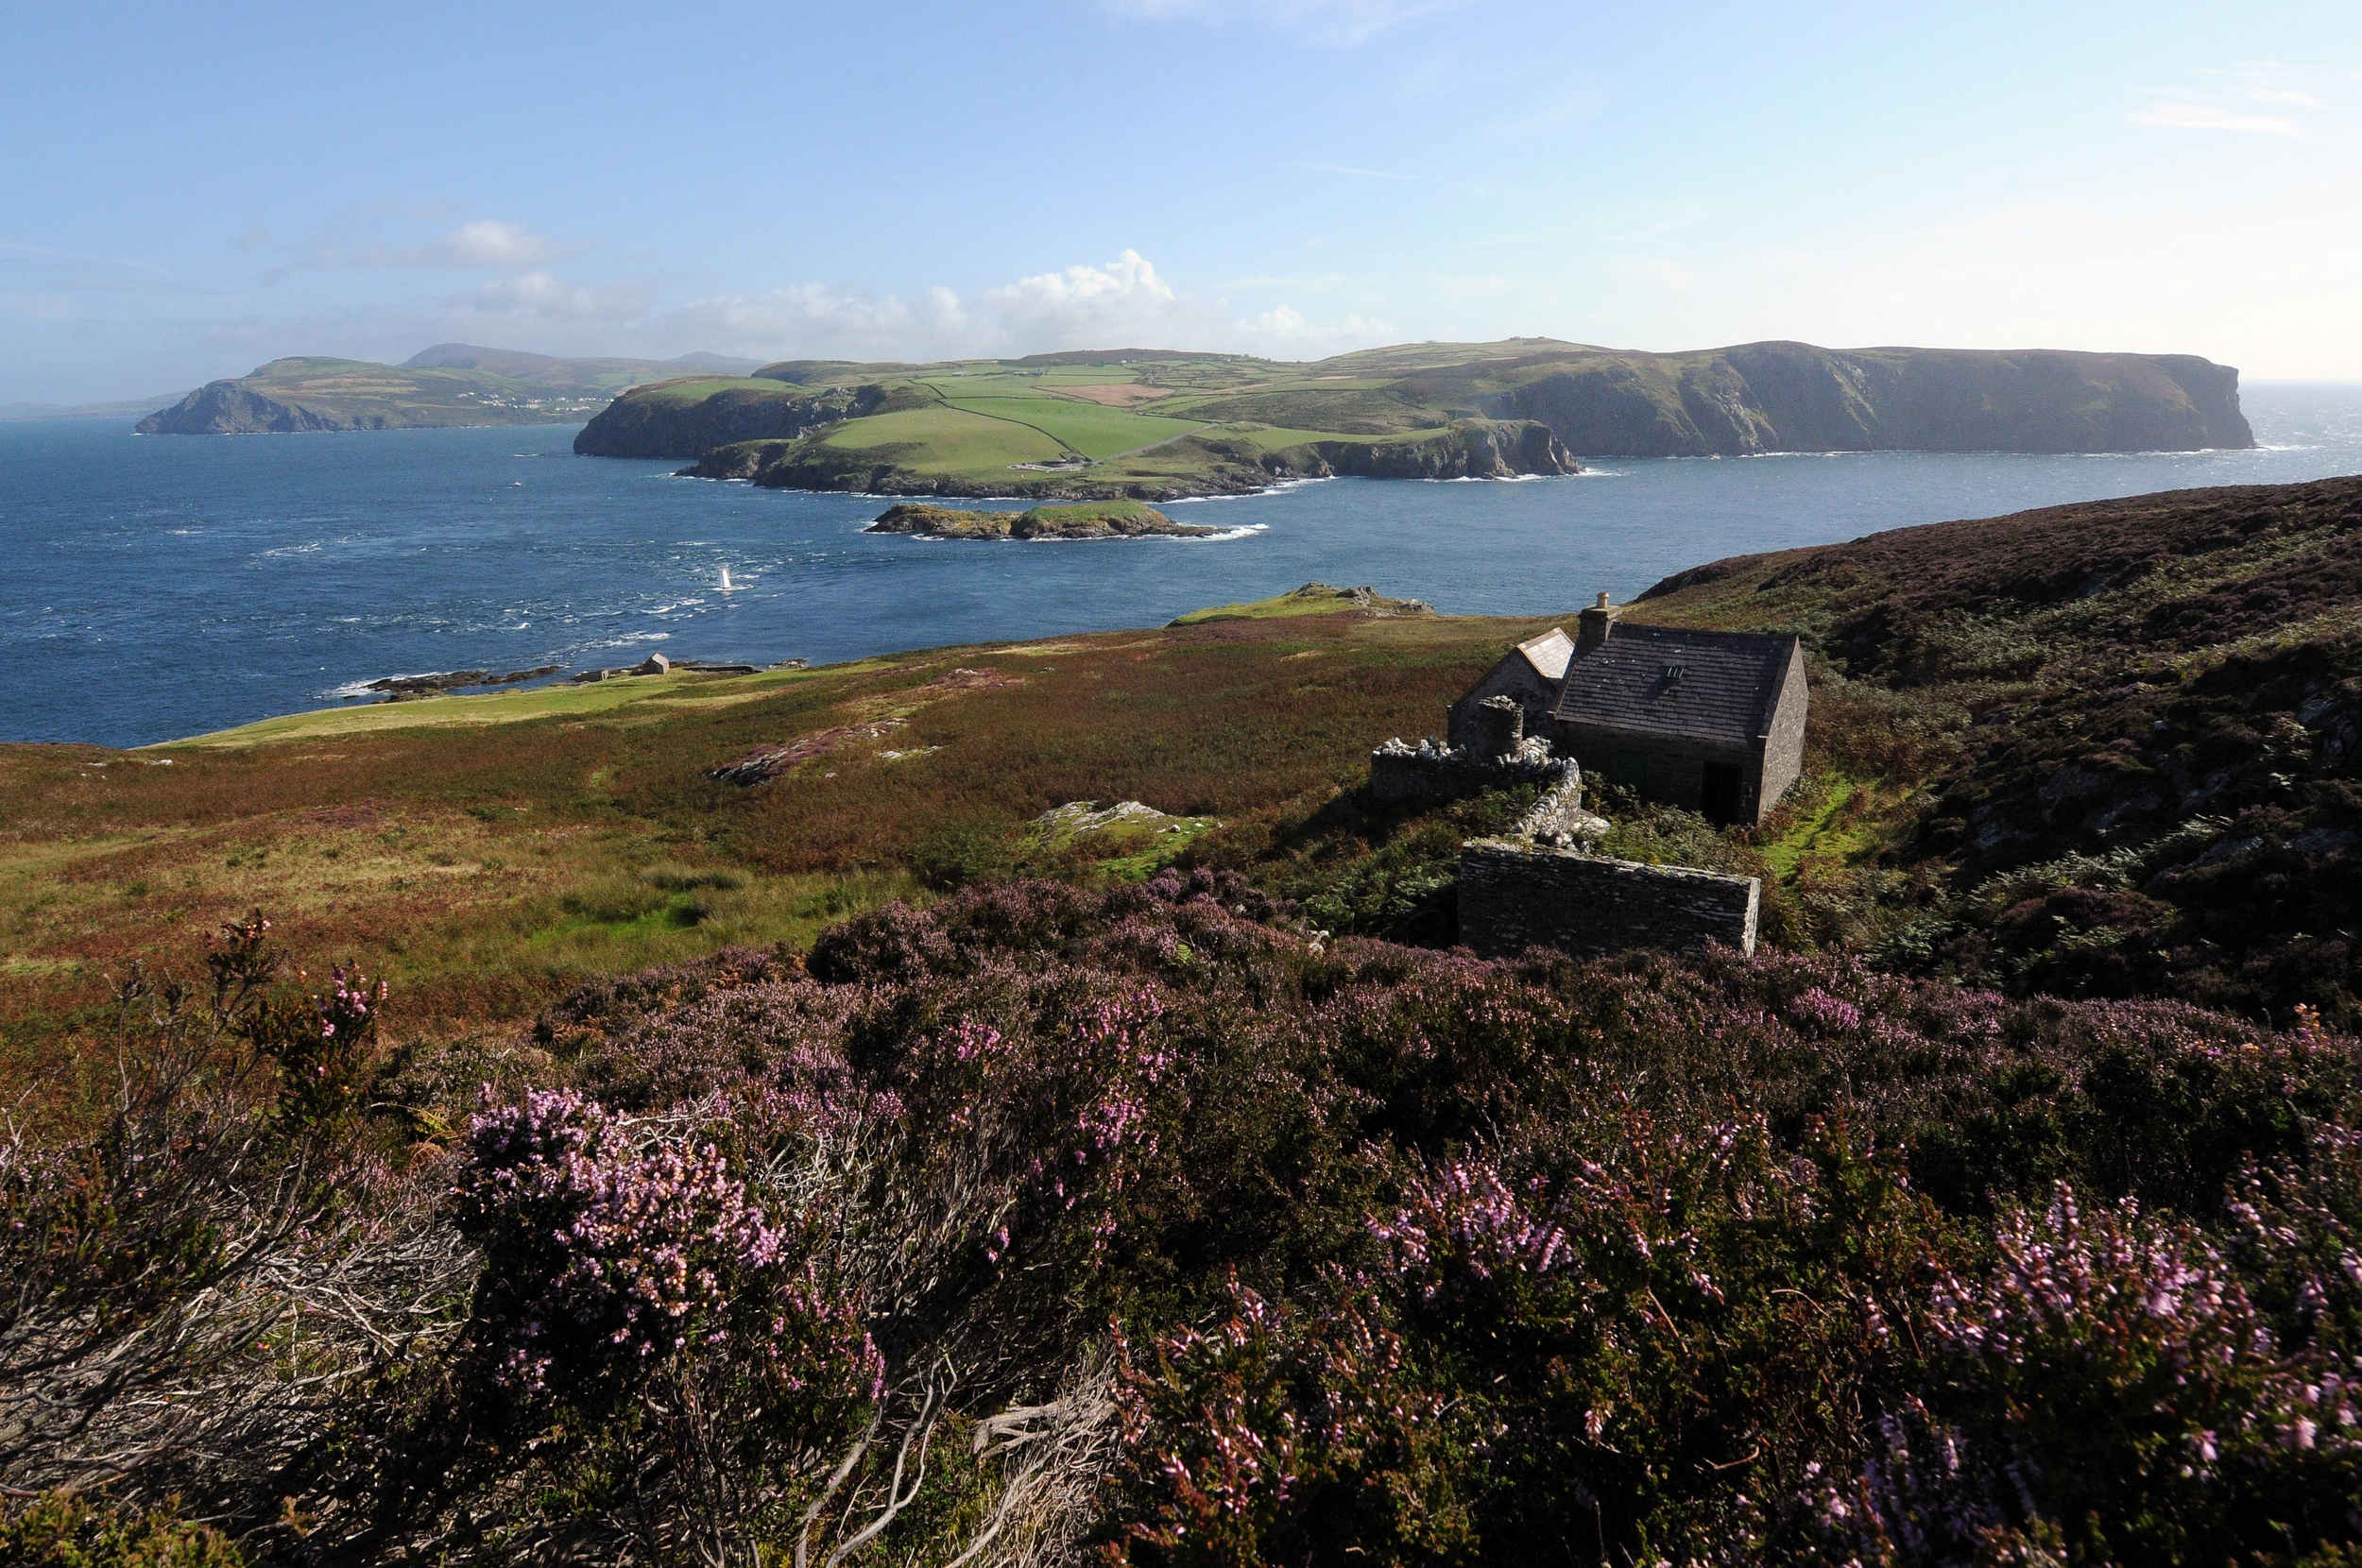 The derelict cottage known as Jane's house on the Calf of Man, looking across the Sound